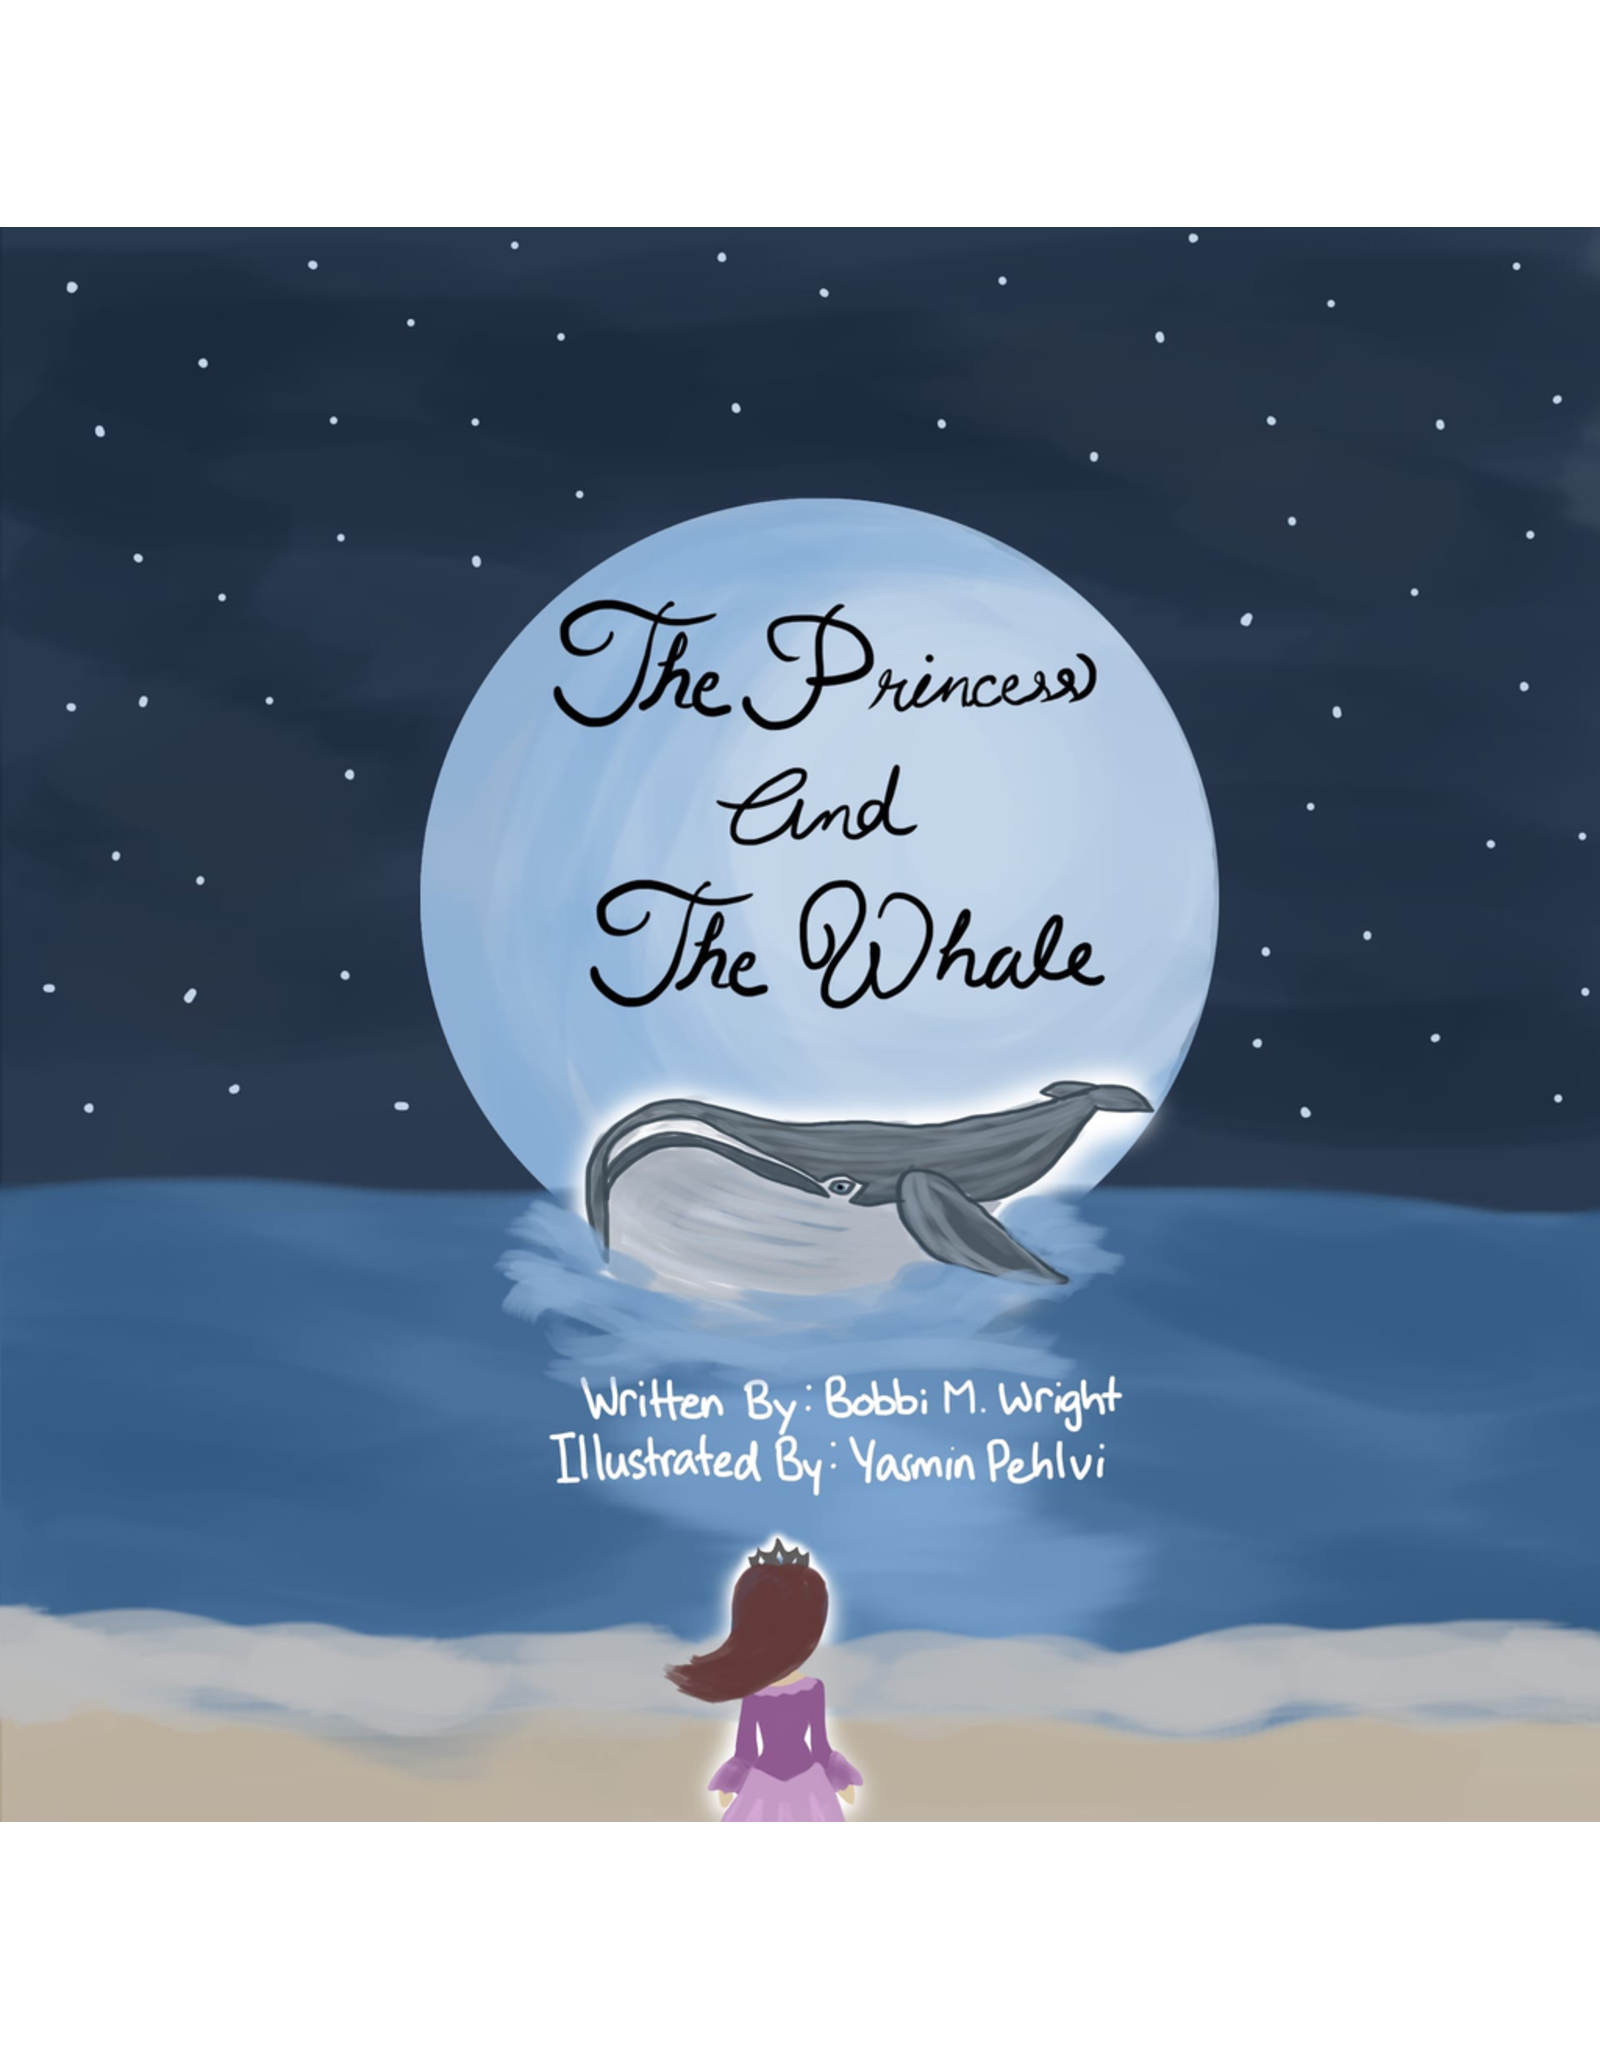 Blue Whale Moon Publishing BWMP1 The Princess and The Whale Book